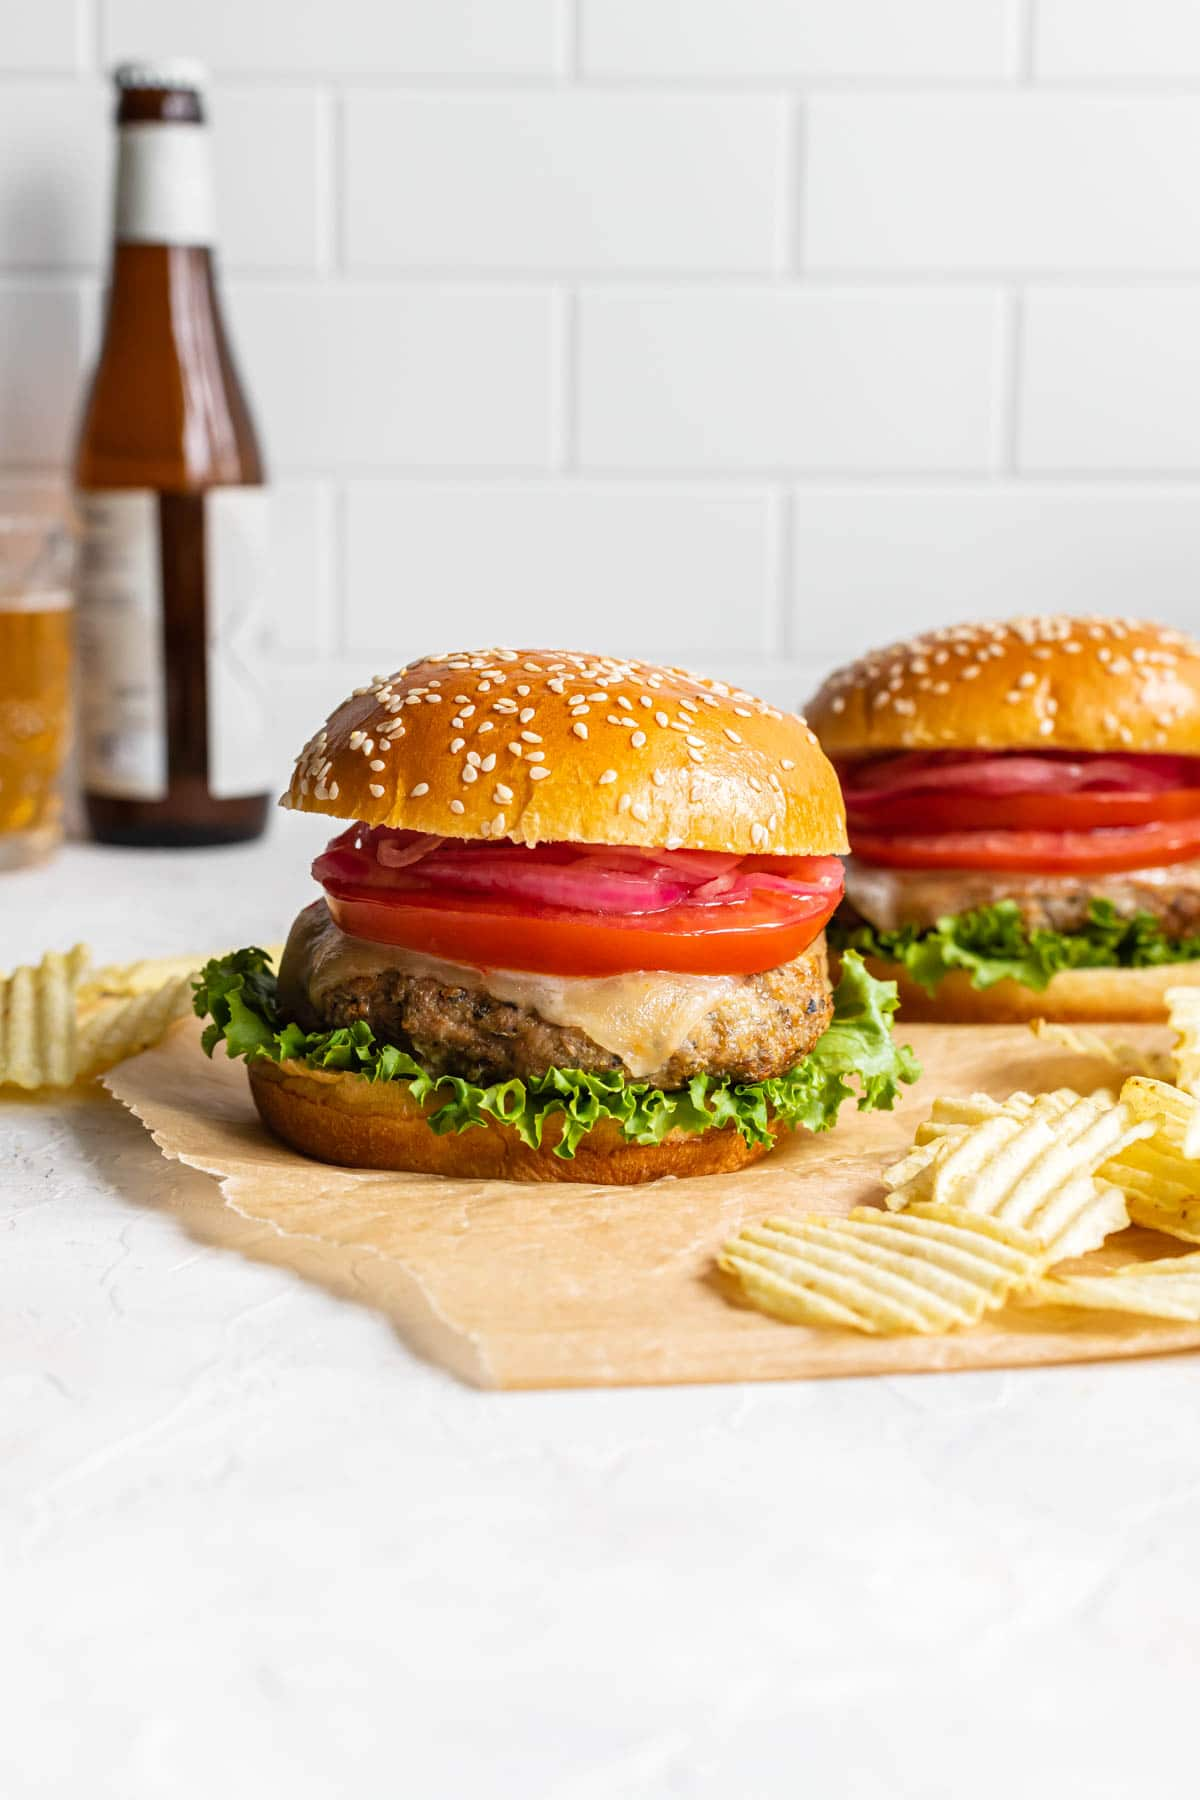 Side view of two burgers on parchment paper with potato chips and a bottle of beer in the background.